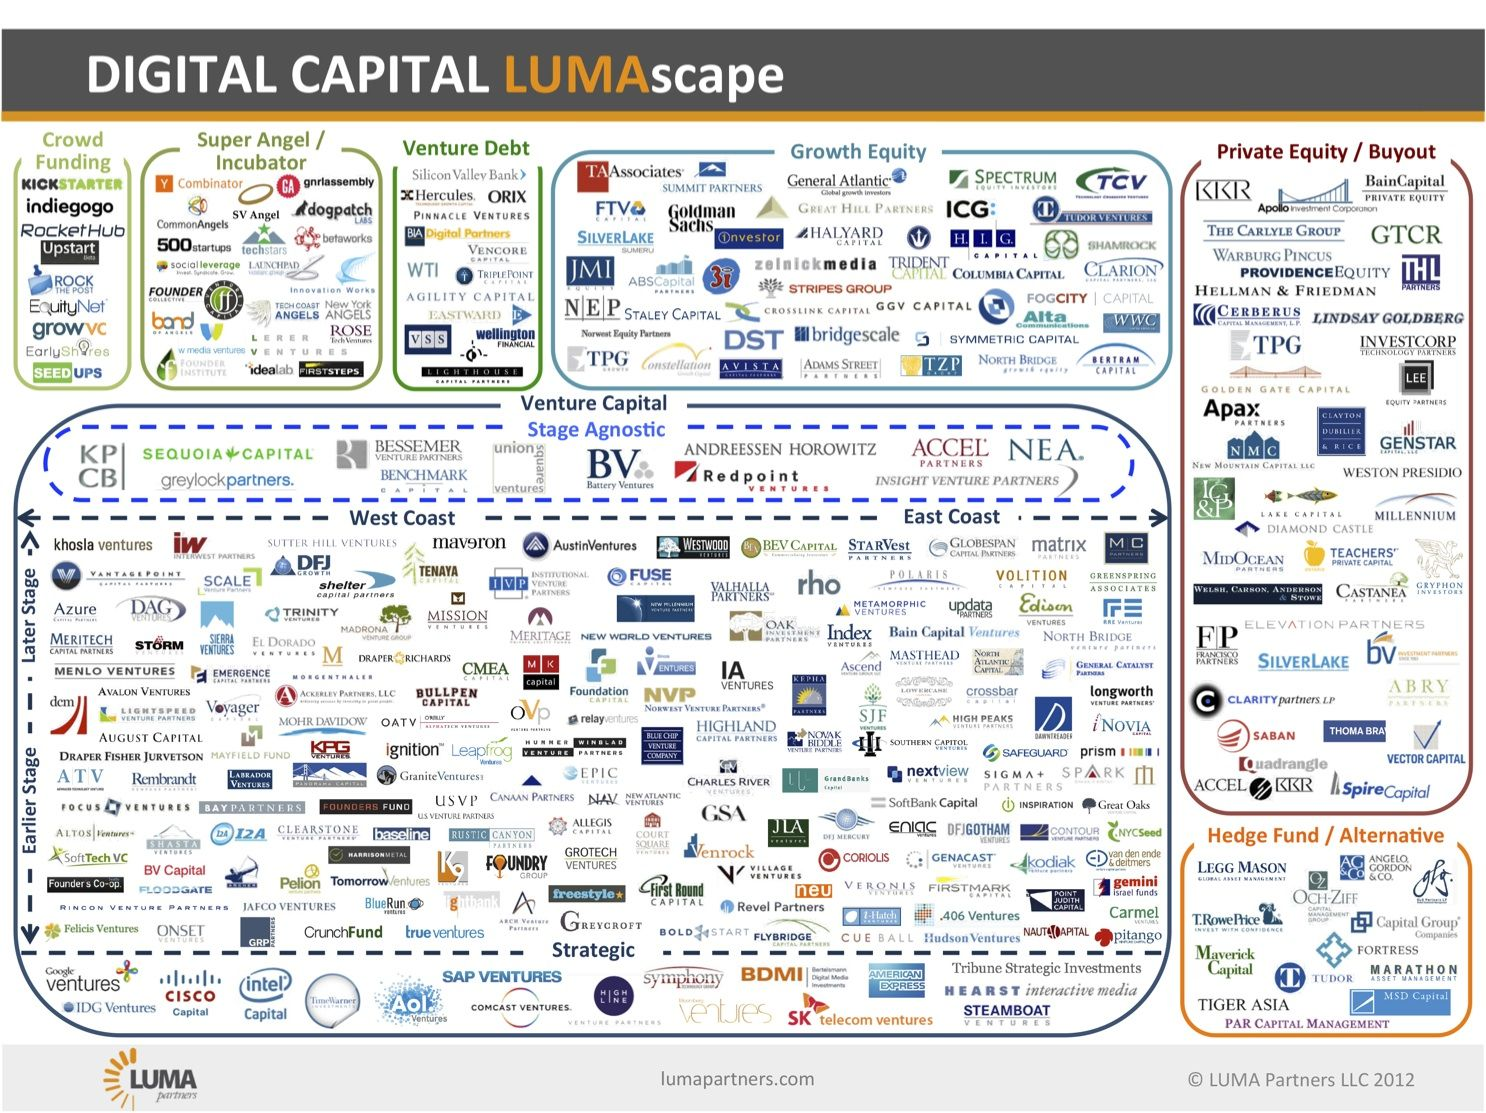 Digital Capital Lumascape Vcs Angels Accelerators Private